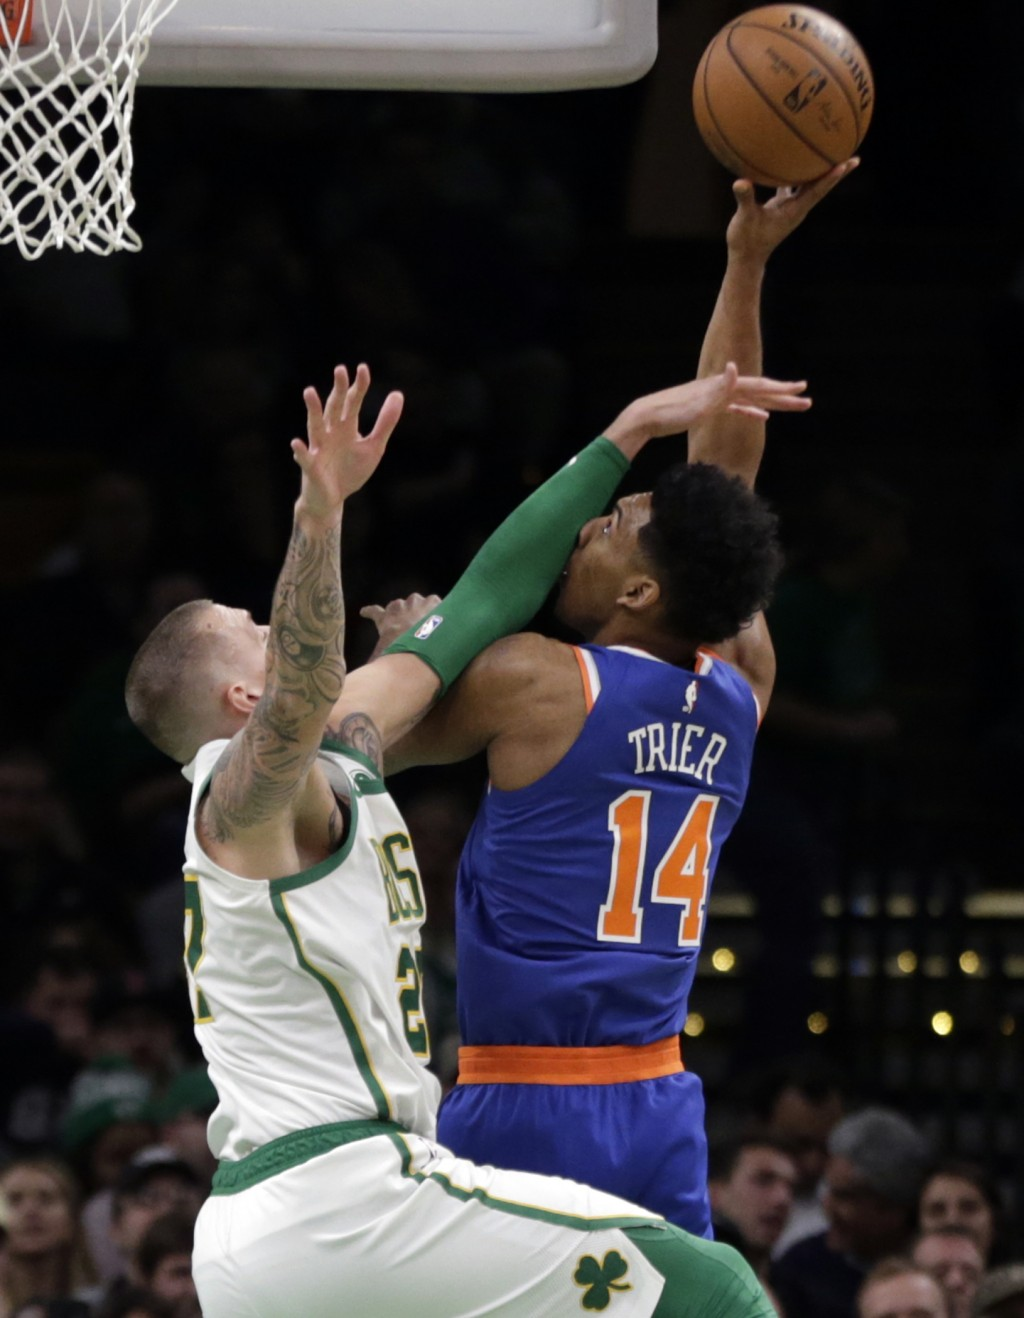 New York Knicks guard Allonzo Trier (14) tries to shoot over Boston Celtics forward Daniel Theis (27) during the first quarter of an NBA basketball ga